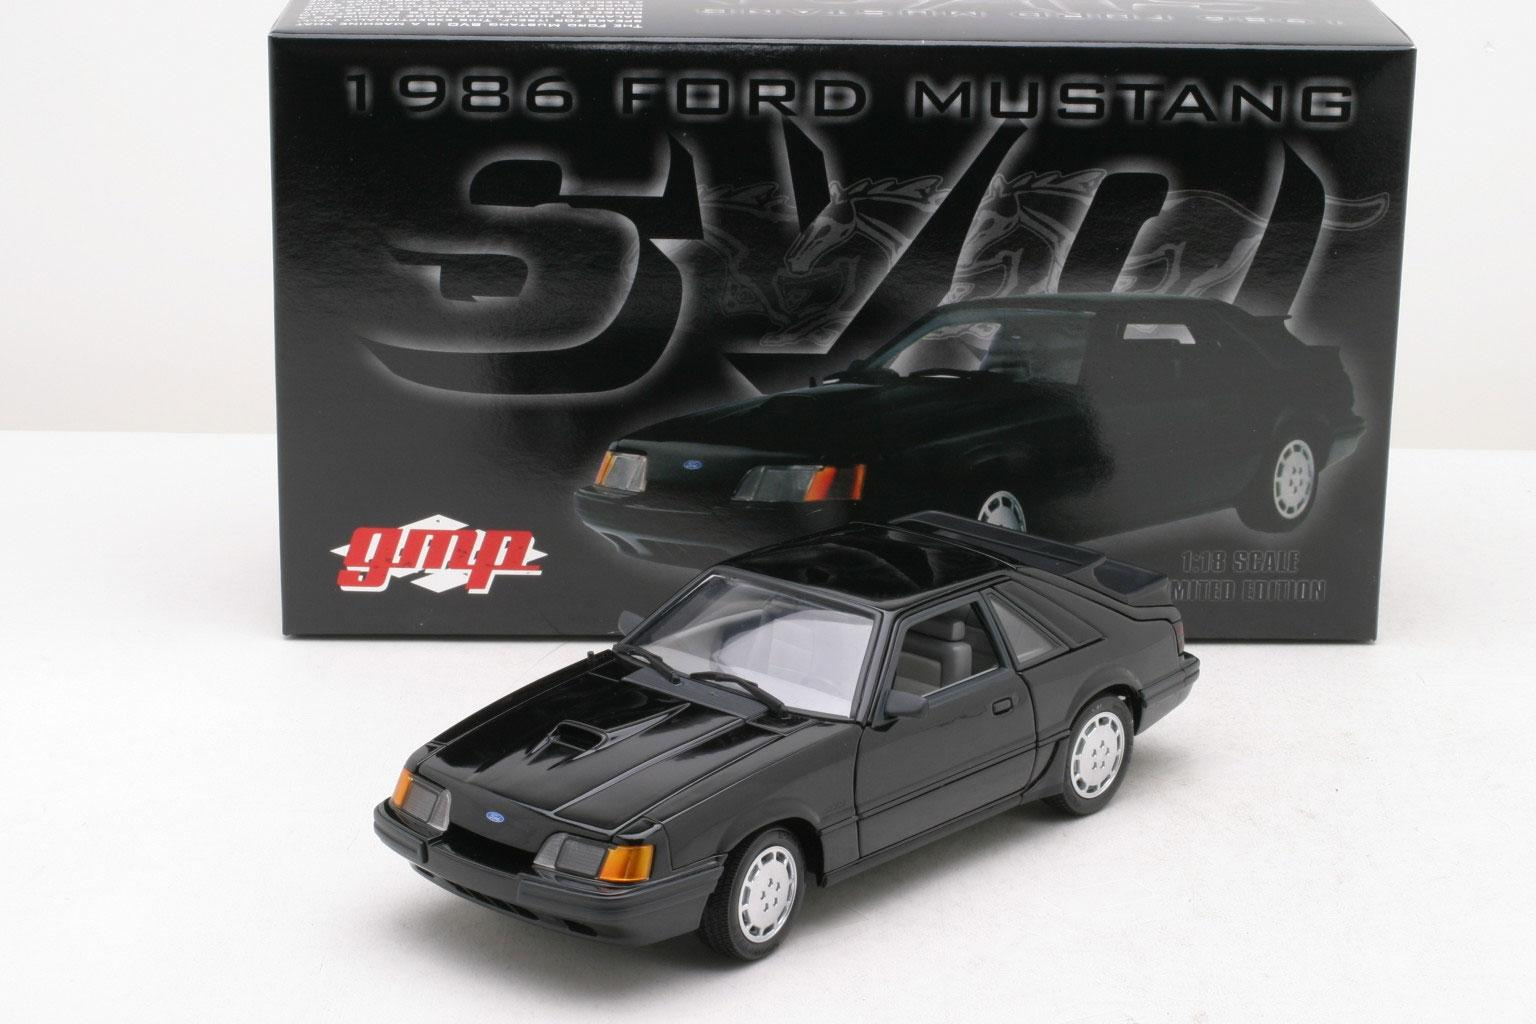 GMP: 1986 Mustang SVO (8064) in 1:18 scale